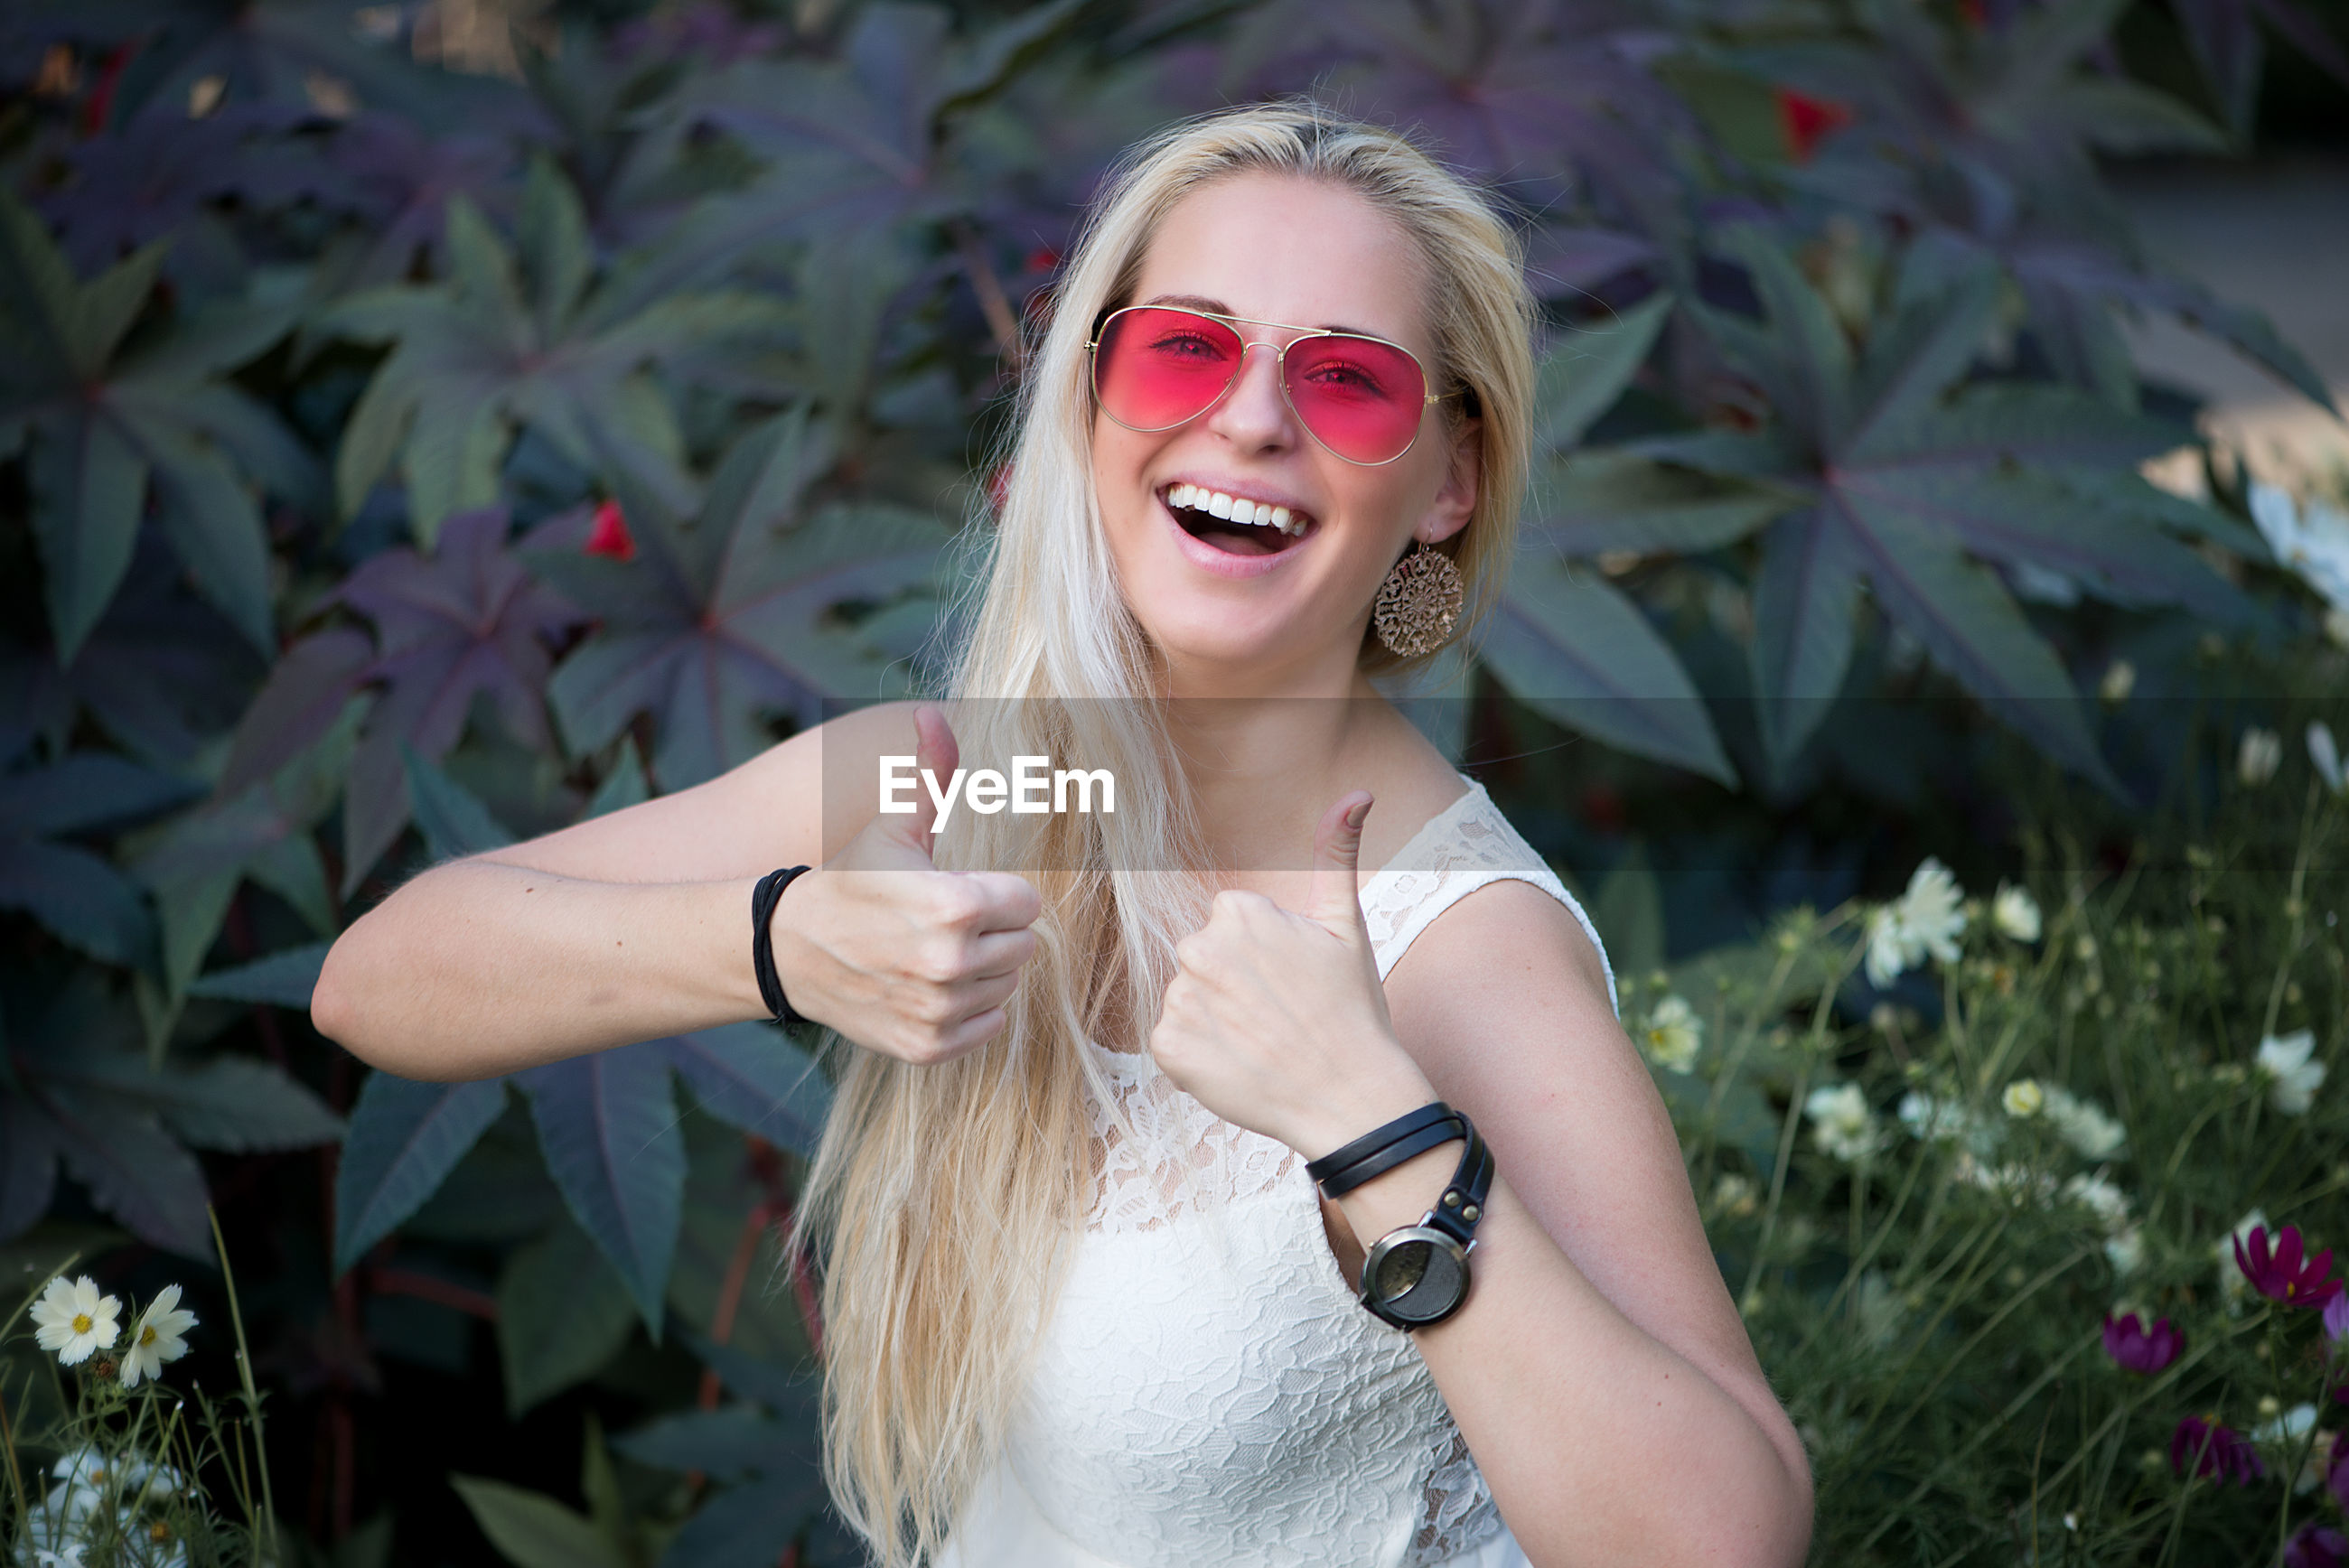 Portrait of beautiful woman gesturing thumbs up while standing against plants